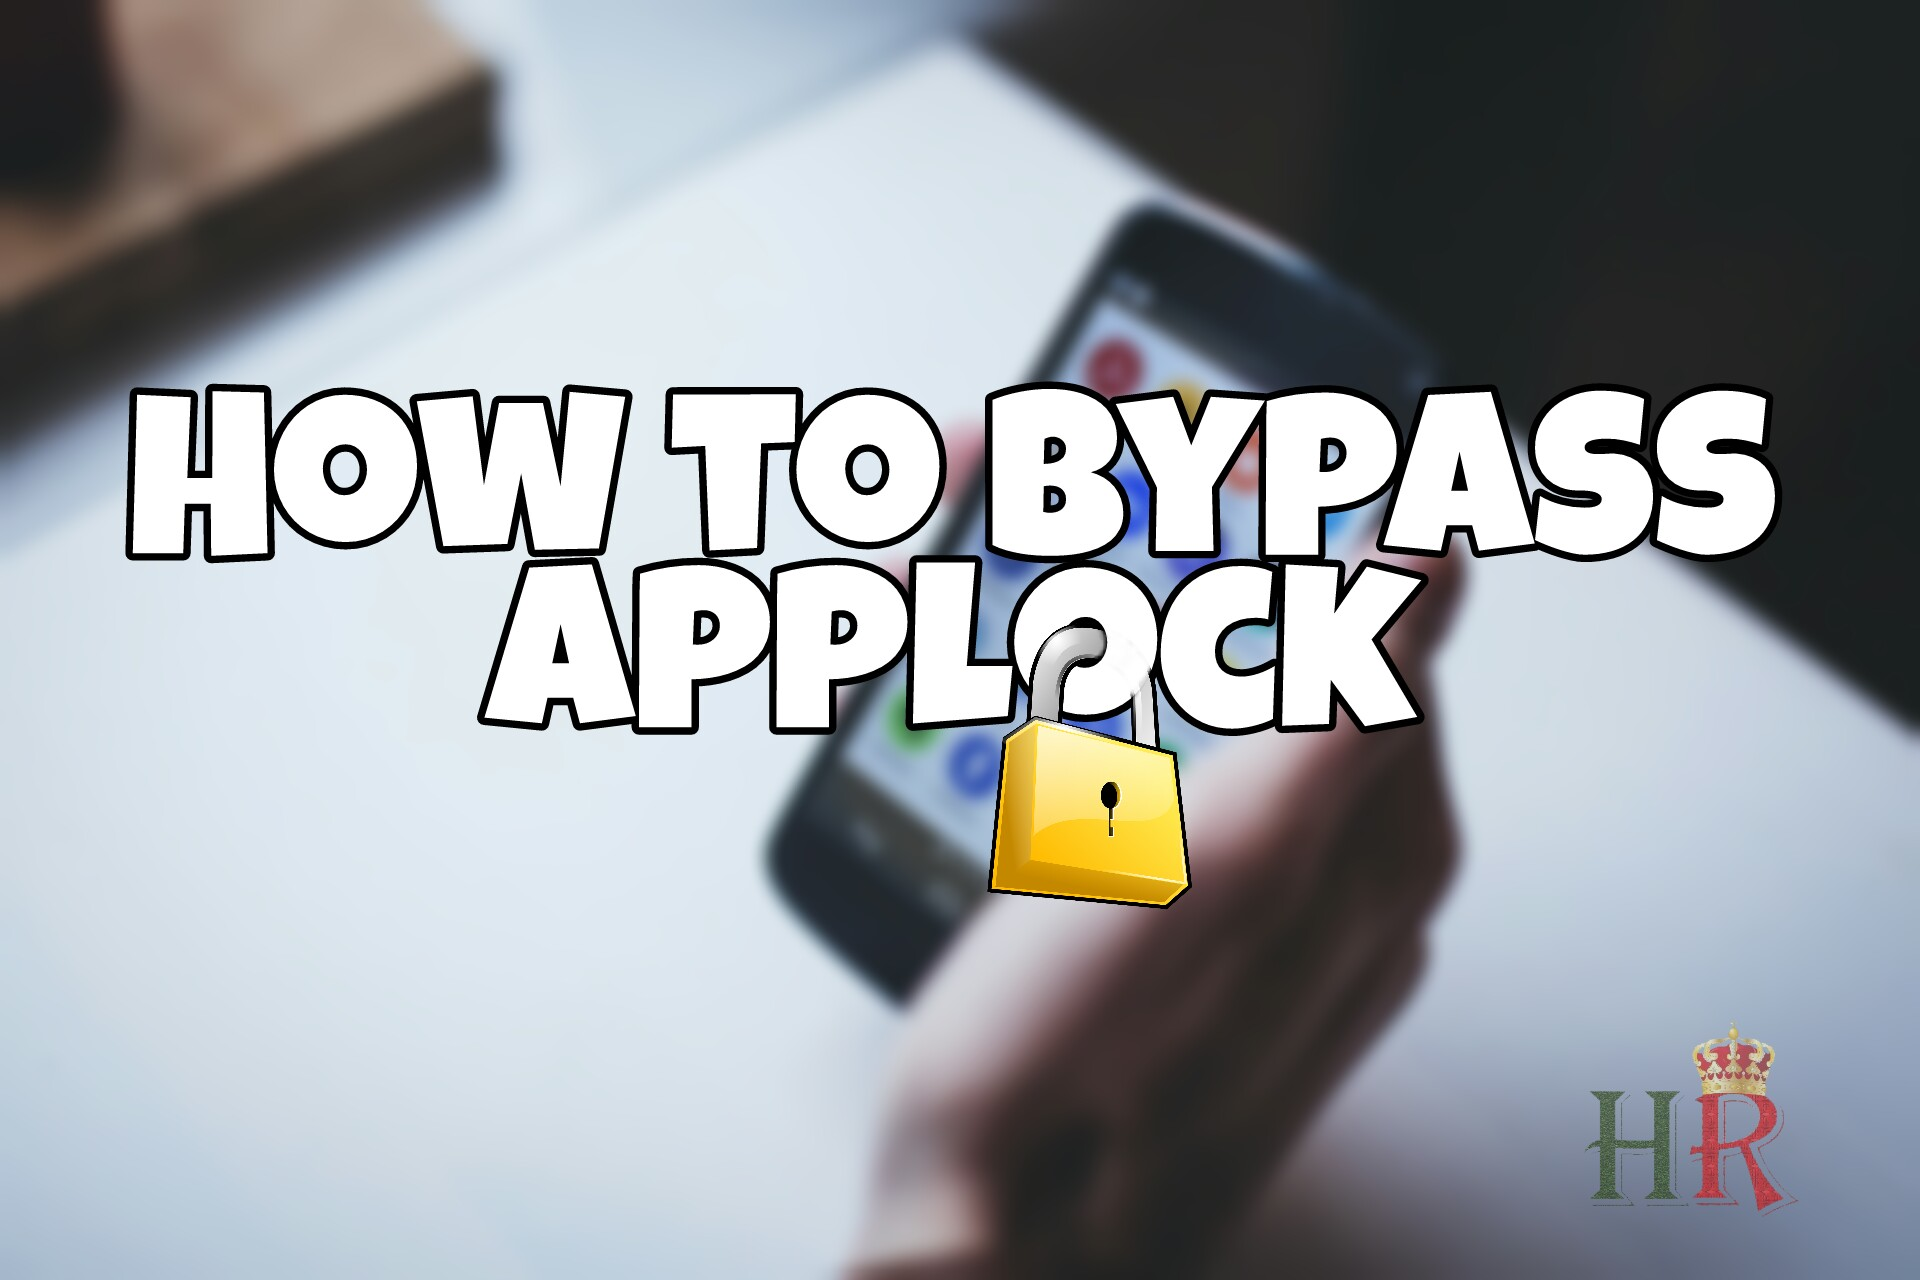 How to bypass any Applock security without knowing passwords, pins or pattern lock